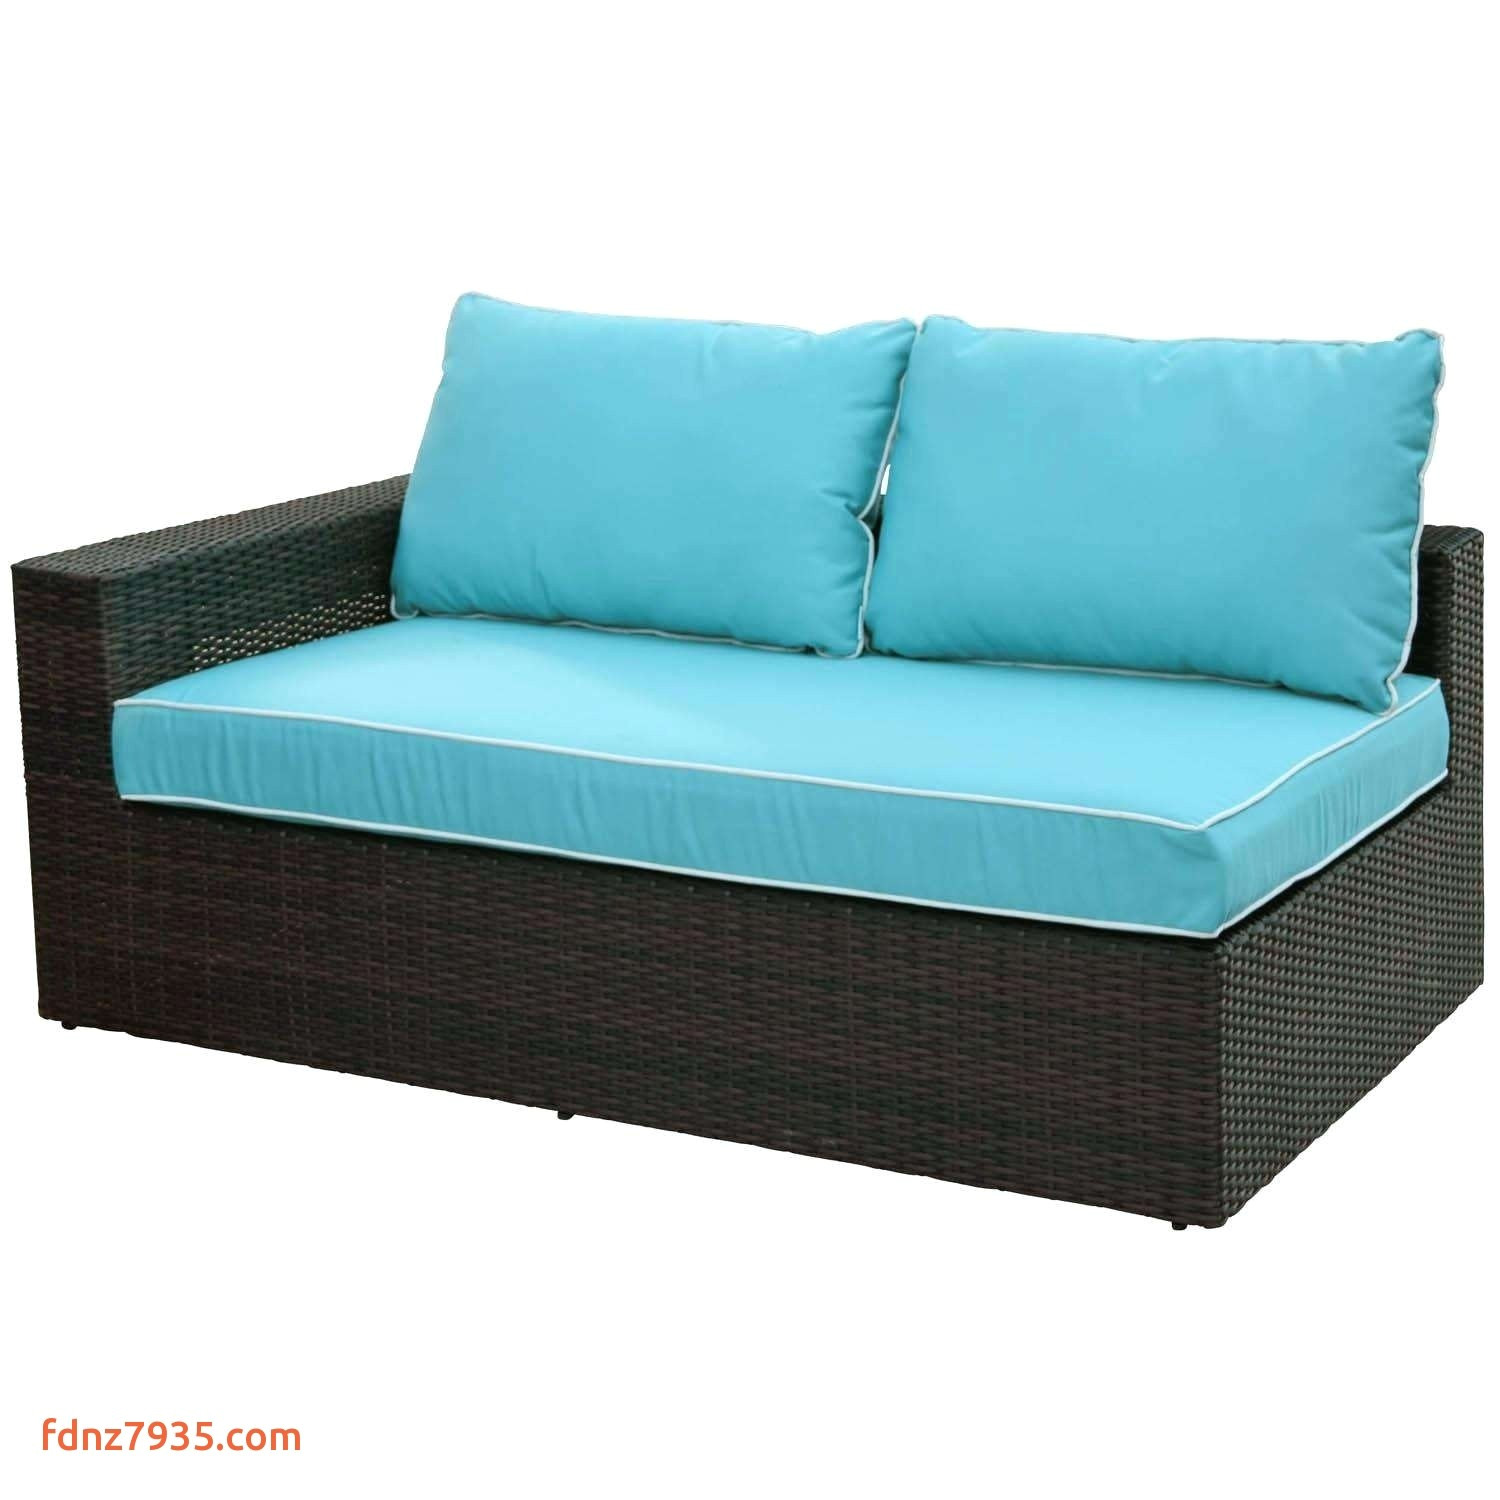 replacement mattress for sleeper sofa best wicker outdoor sofa 0d patio chairs sale replacement cushions